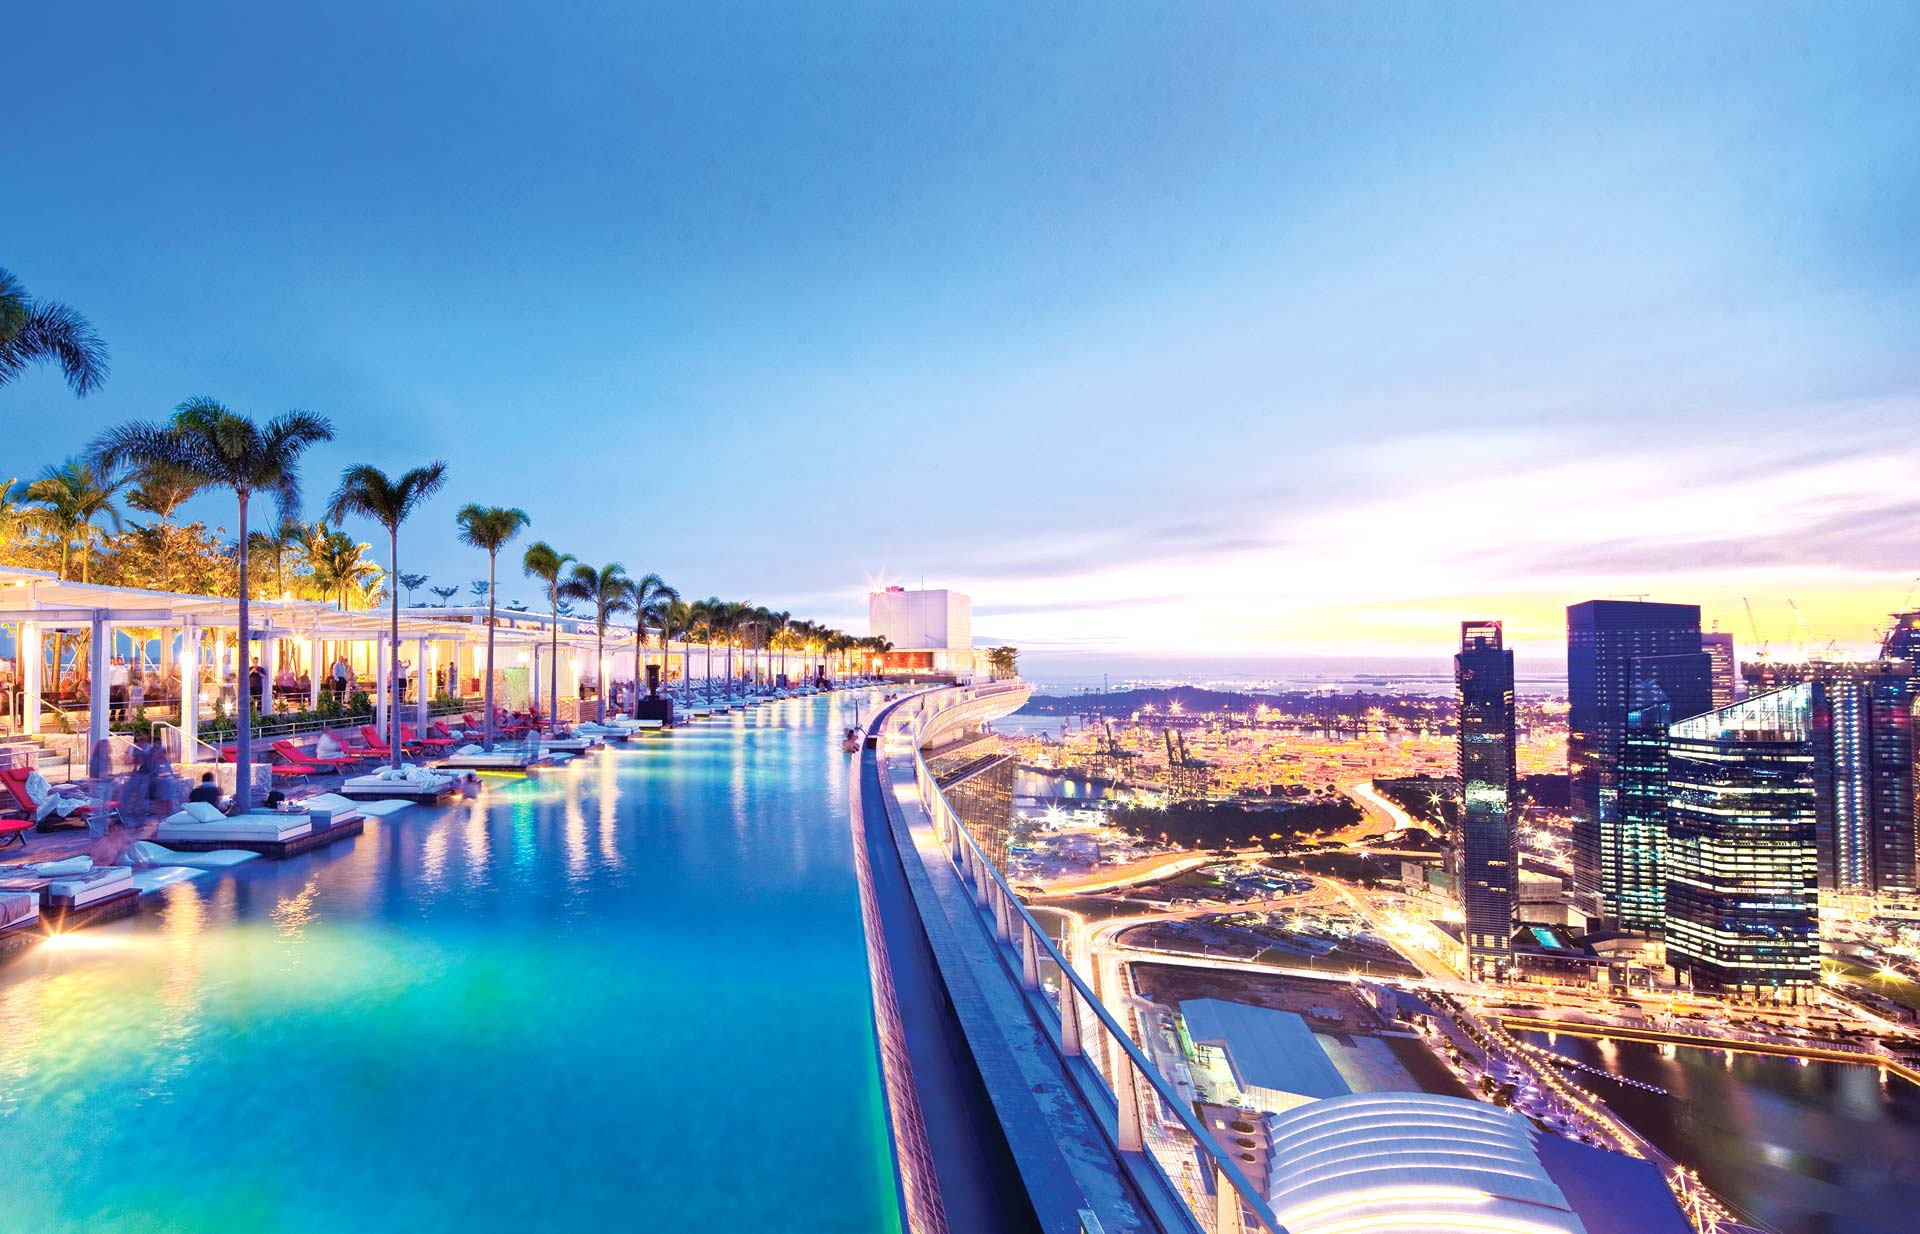 Infinity Pool | Marina Bay Sands | Swimming Pools in Singapore